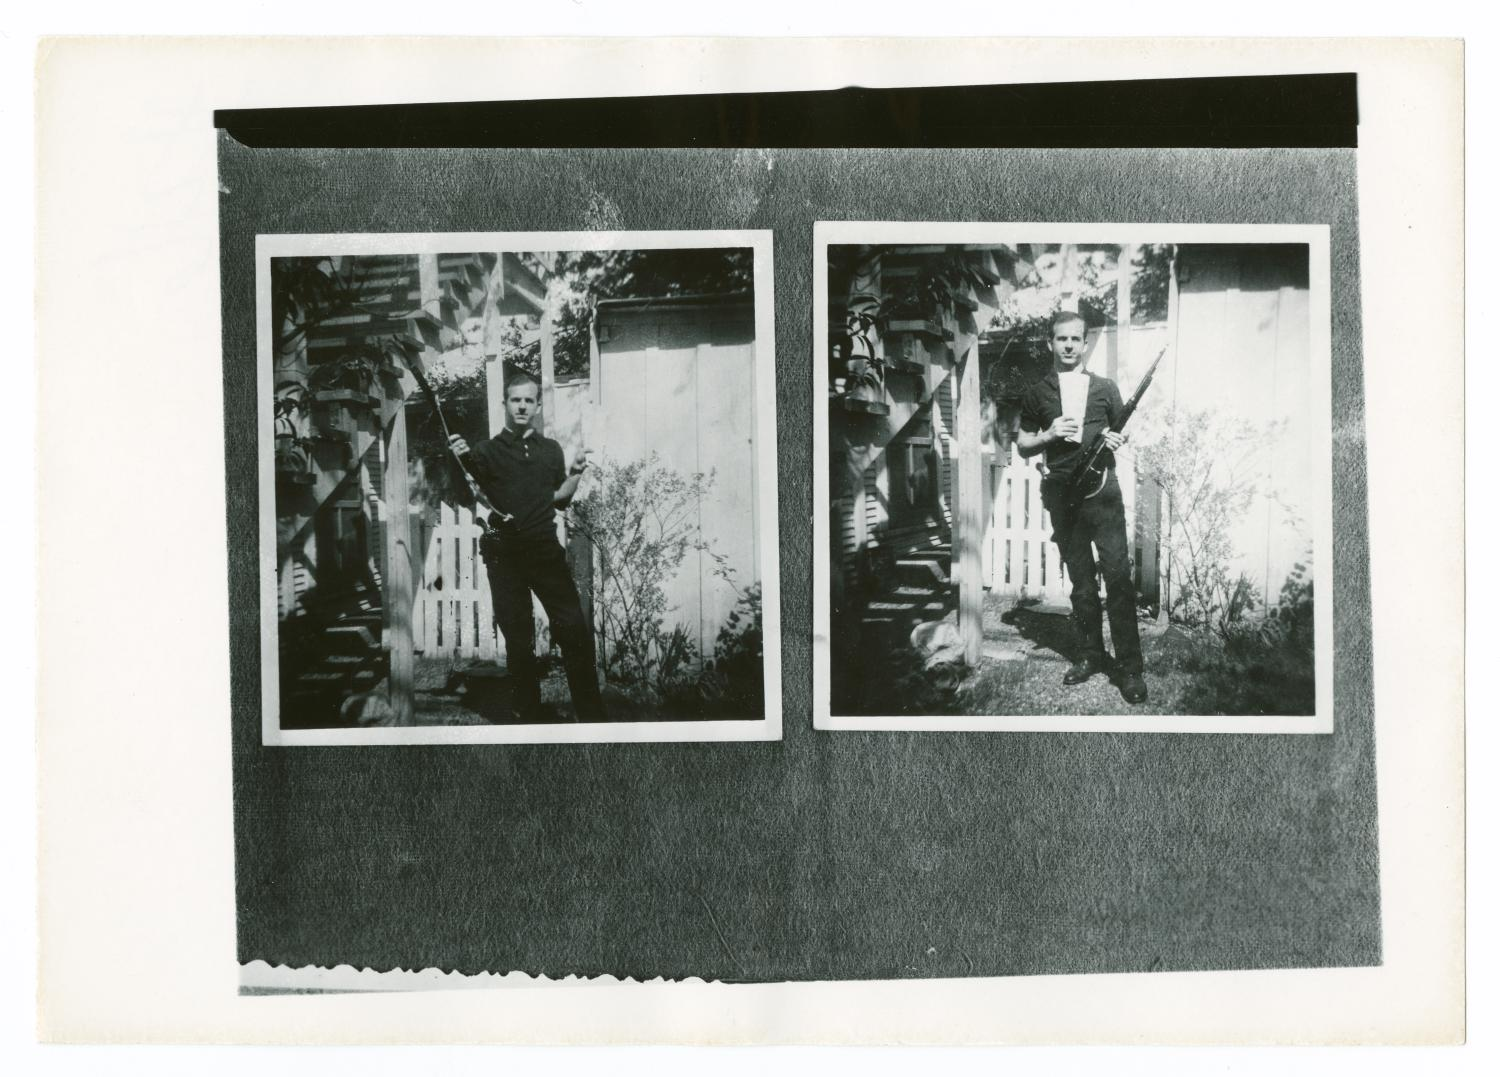 Lee Harvey Oswald in Backyard With Rifle #2 - Side 1 of ...